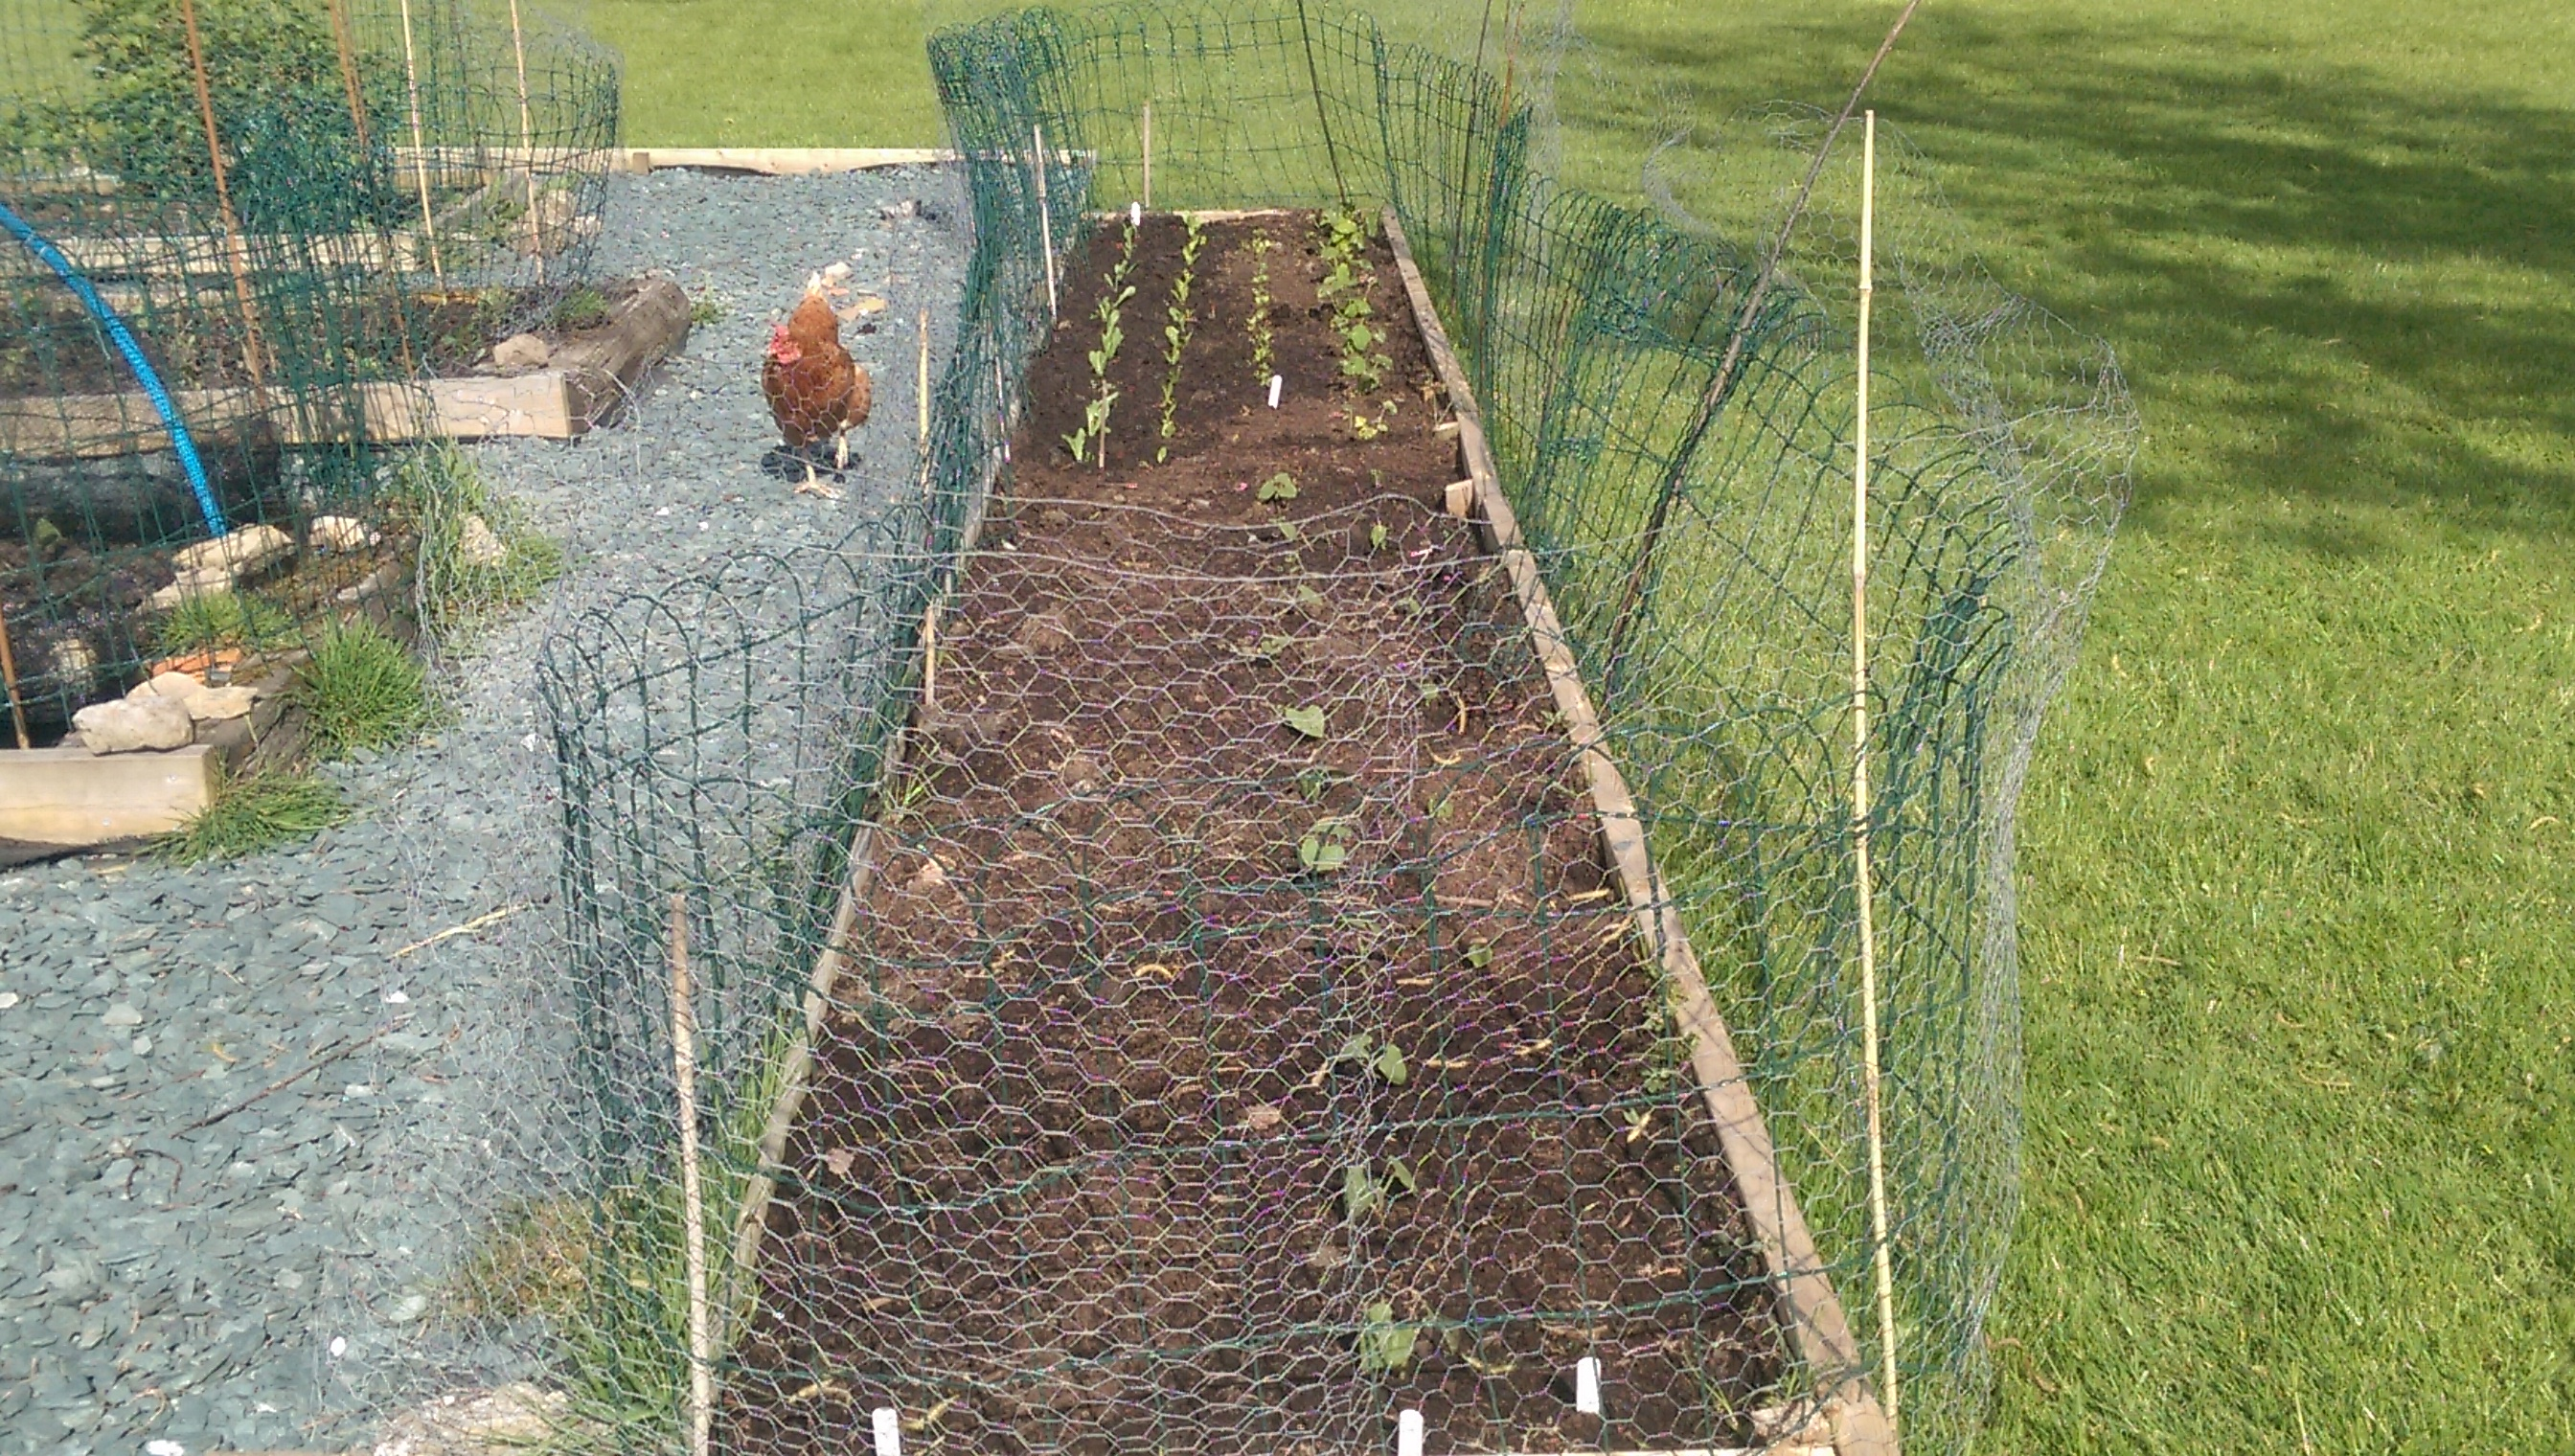 Expansion into new raised bed